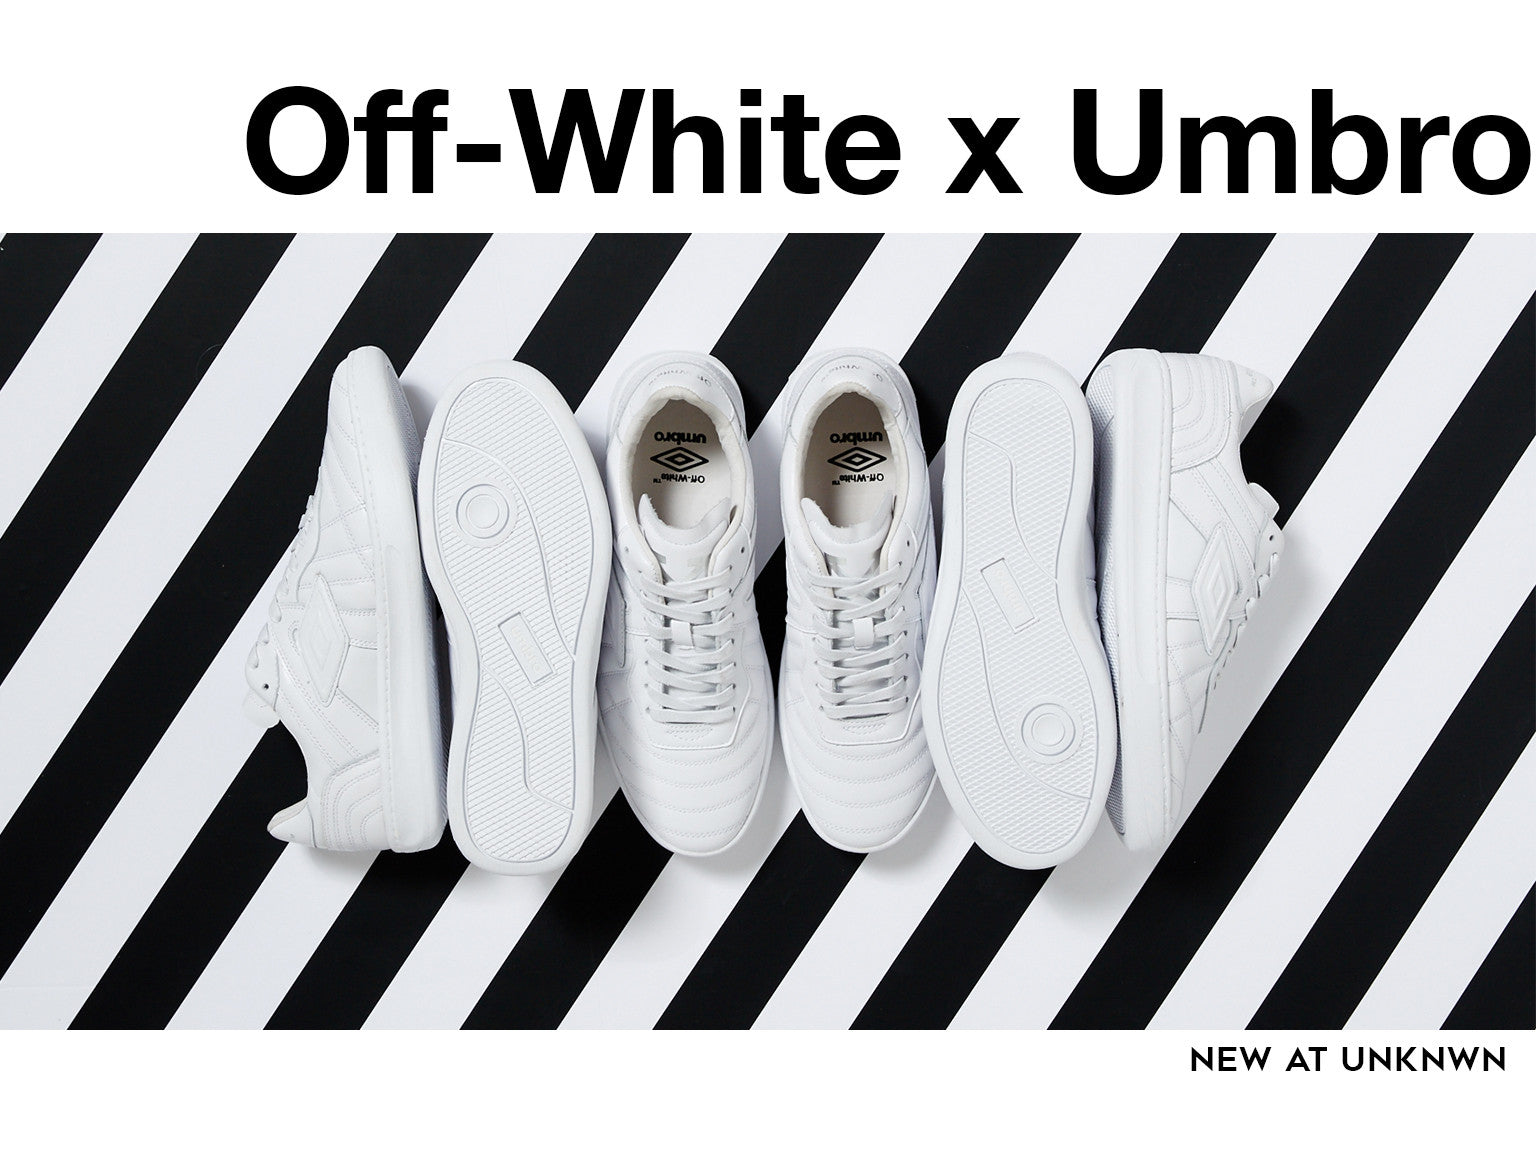 New at UNKNWN: OFF-WHITE ℅ Virgil Abloh x Umbro Sneaker